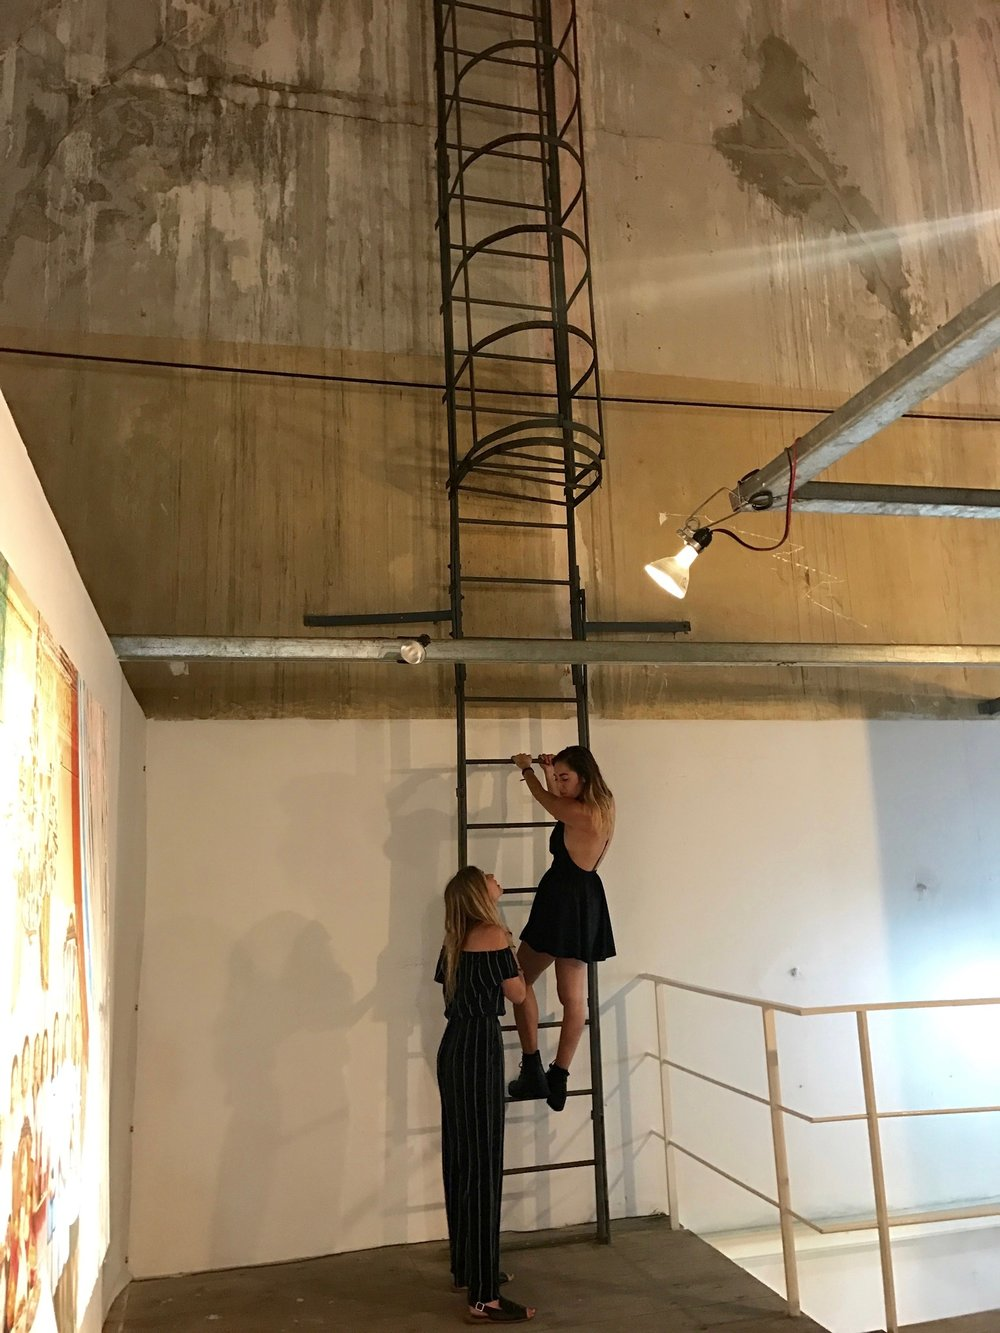 Megan talking me down from climbing the ladder at Fabrica de Arte Cubano.